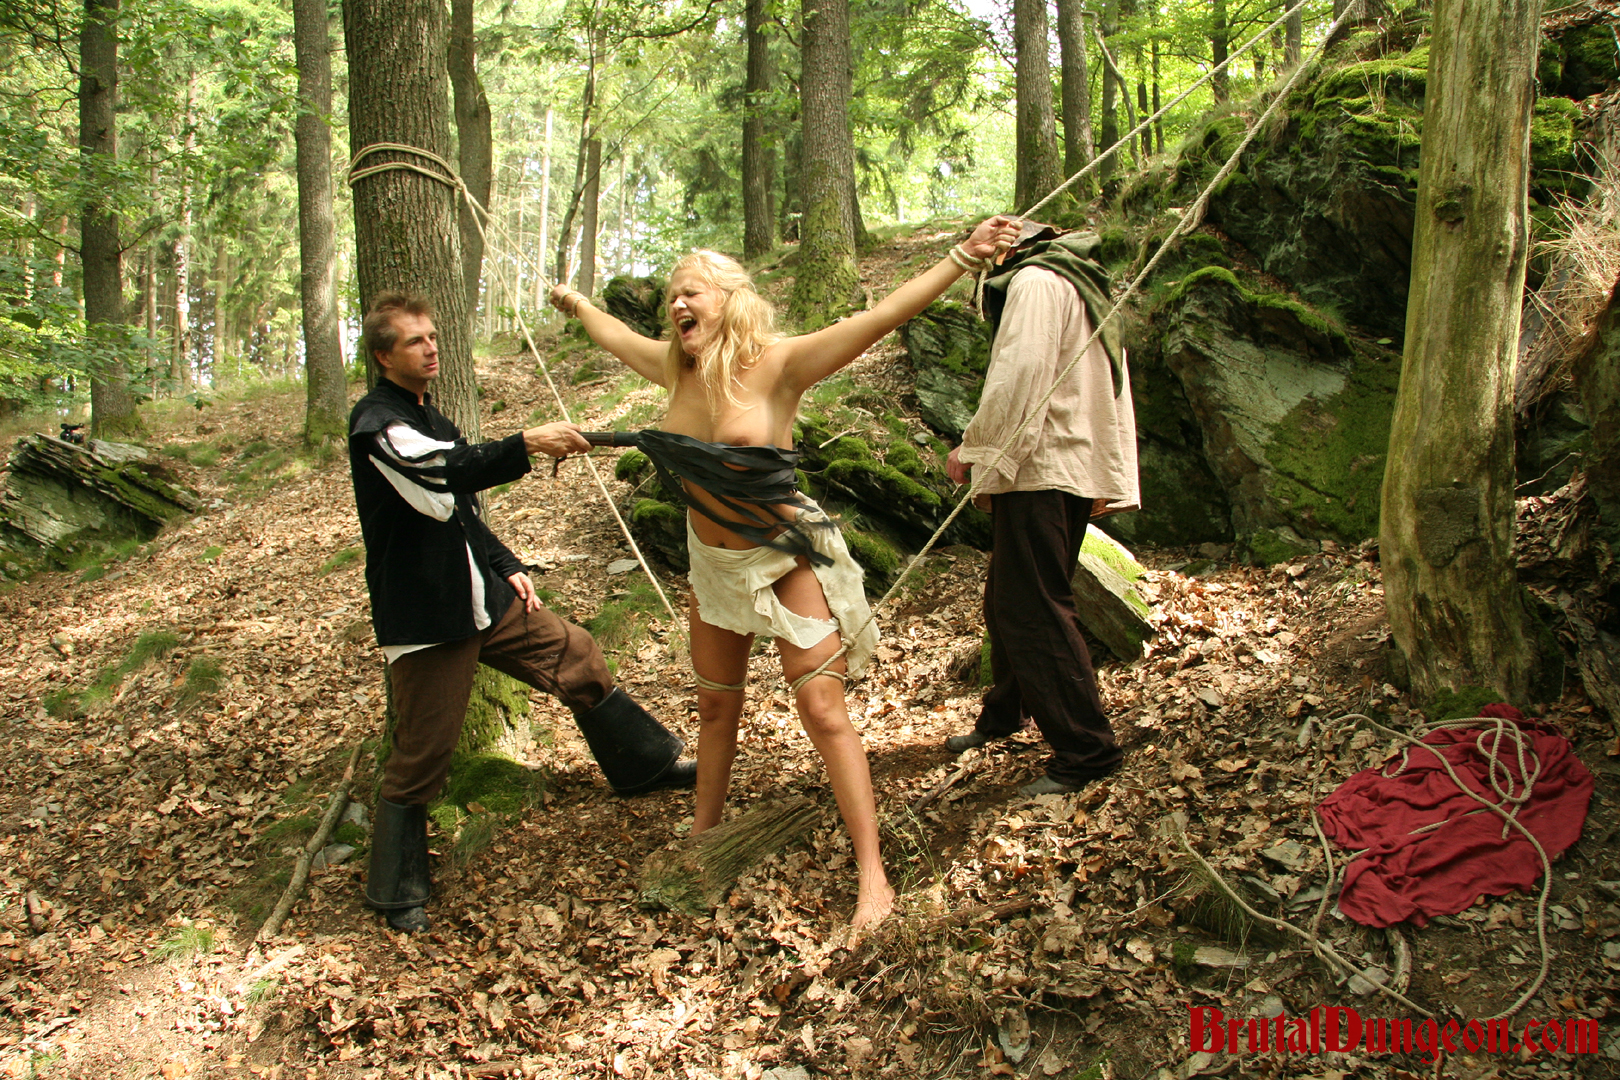 Blonde magda bdsm gangbang. Mighty Blonde Witch Magda is caught conjuring spirits in the forest and punish at once. Our dungeon guards tie her limbs with rough rope to two trees, spread eagle for extreme flogging, imprisonment, BDSM gang bang, outdoor rope bondage, domination, spanking, slapping, fingering, intense breast, nipple and kitty torment.